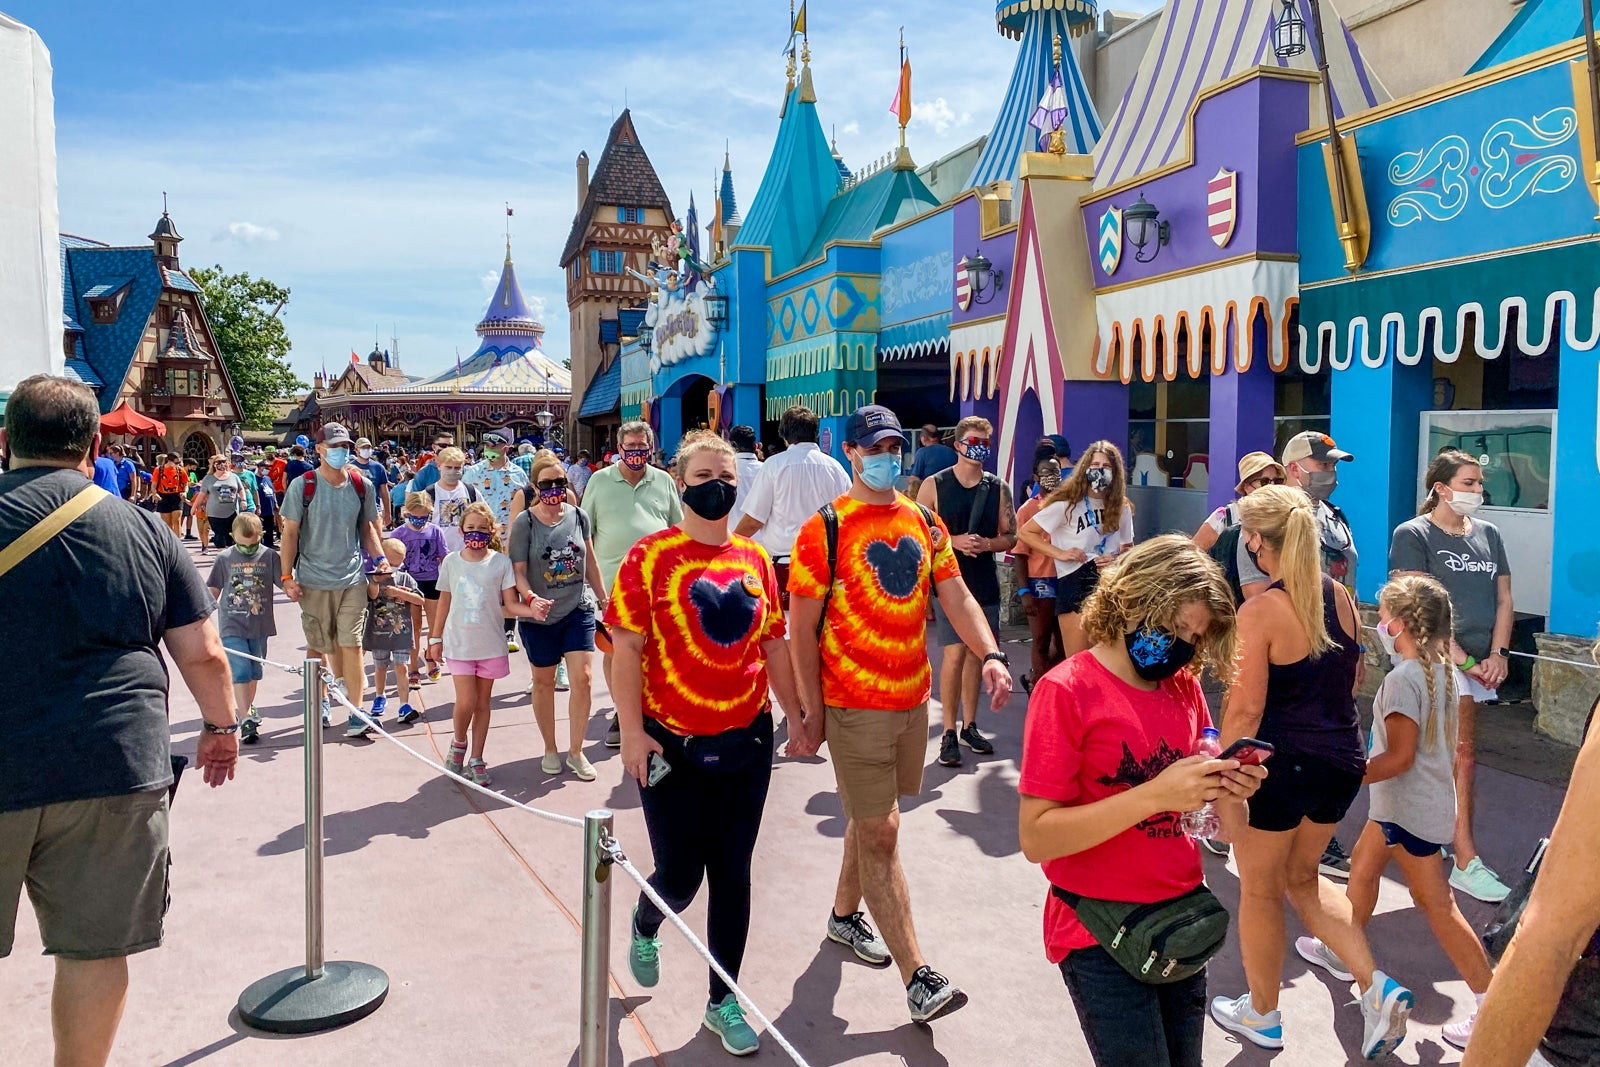 Theme parks in 2021: What's open, what's not and how the experience has changed - The Points Guy